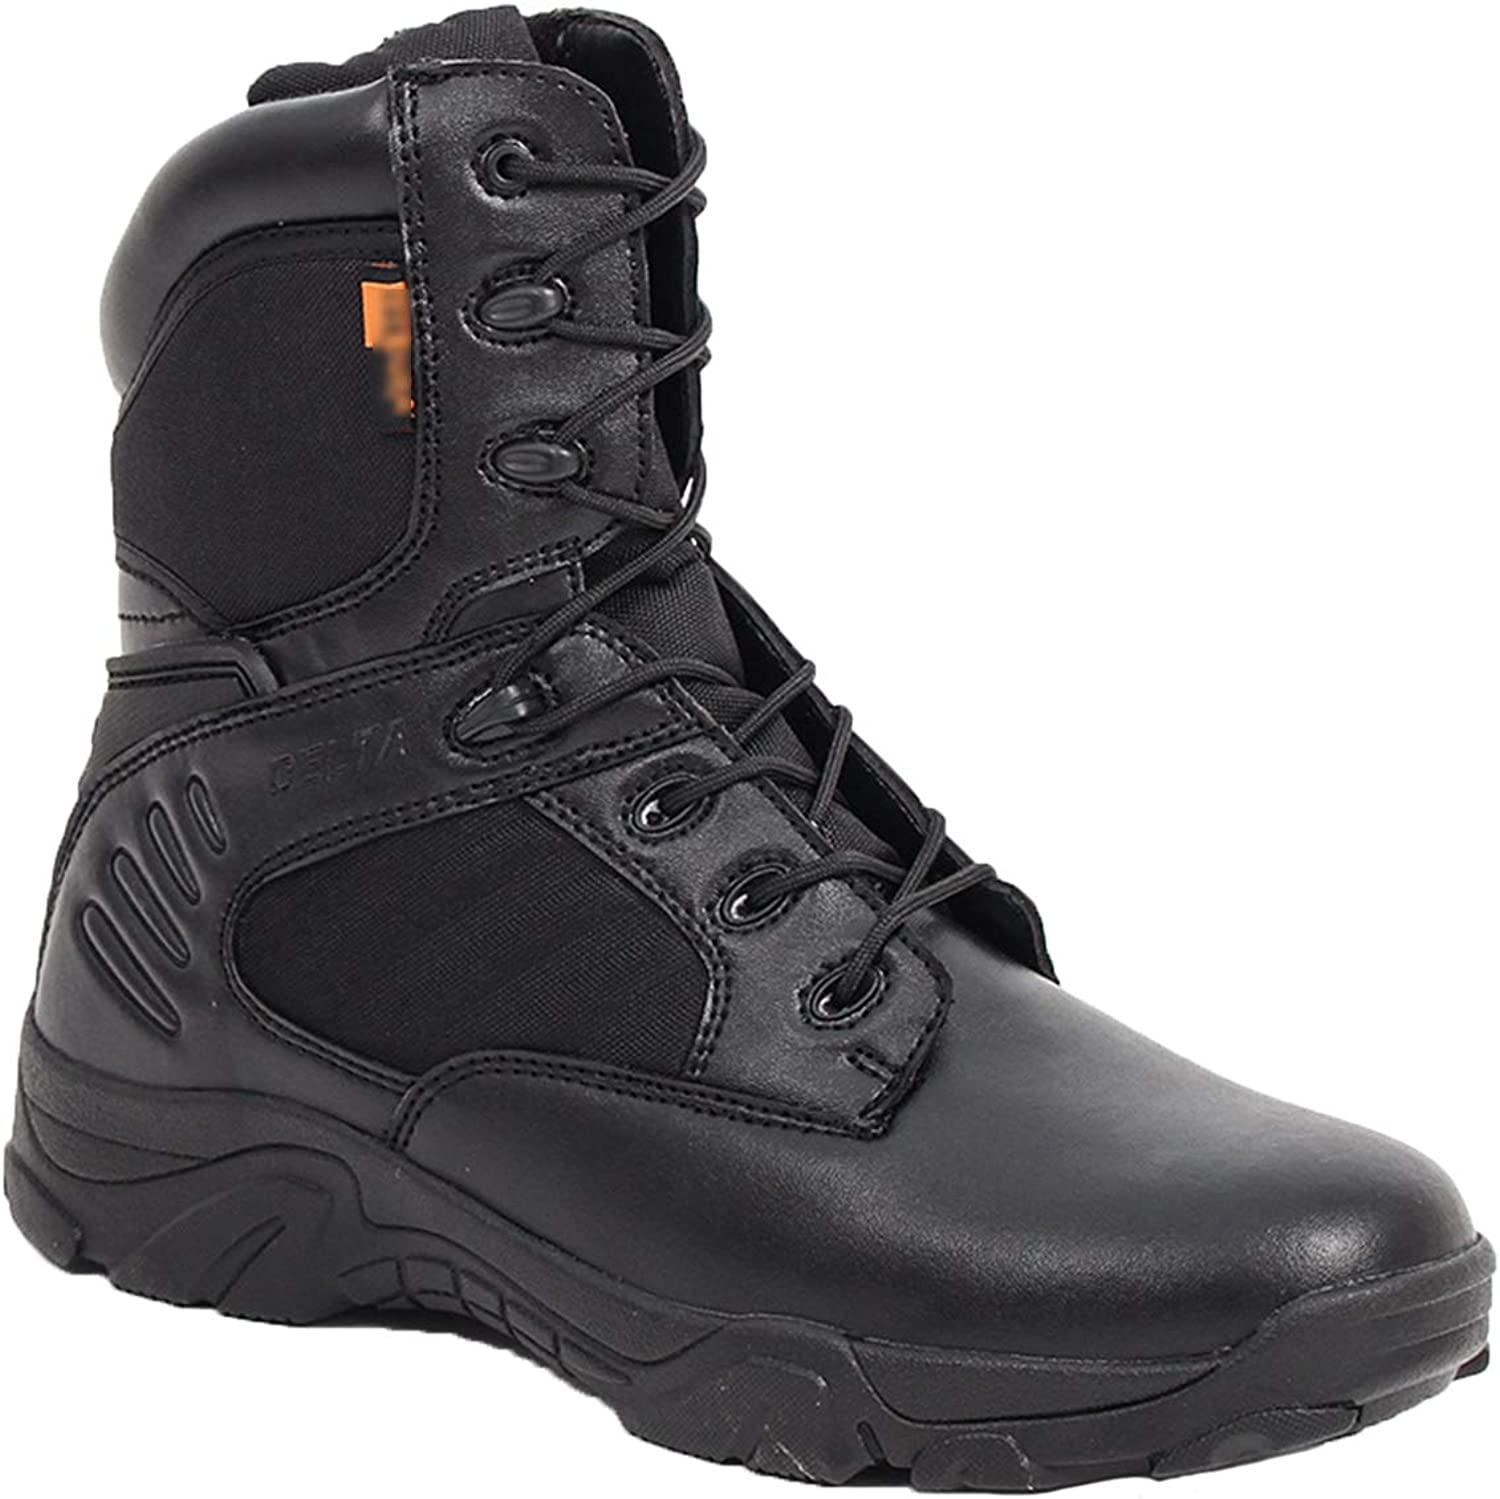 Combat Boots G-3 Leather Side Zip Army Tactical Boots Delta Military Work Army shoes Safety Ankle Boots Breathable Commando Outdoor Desert Tactical Military Patrol Boots